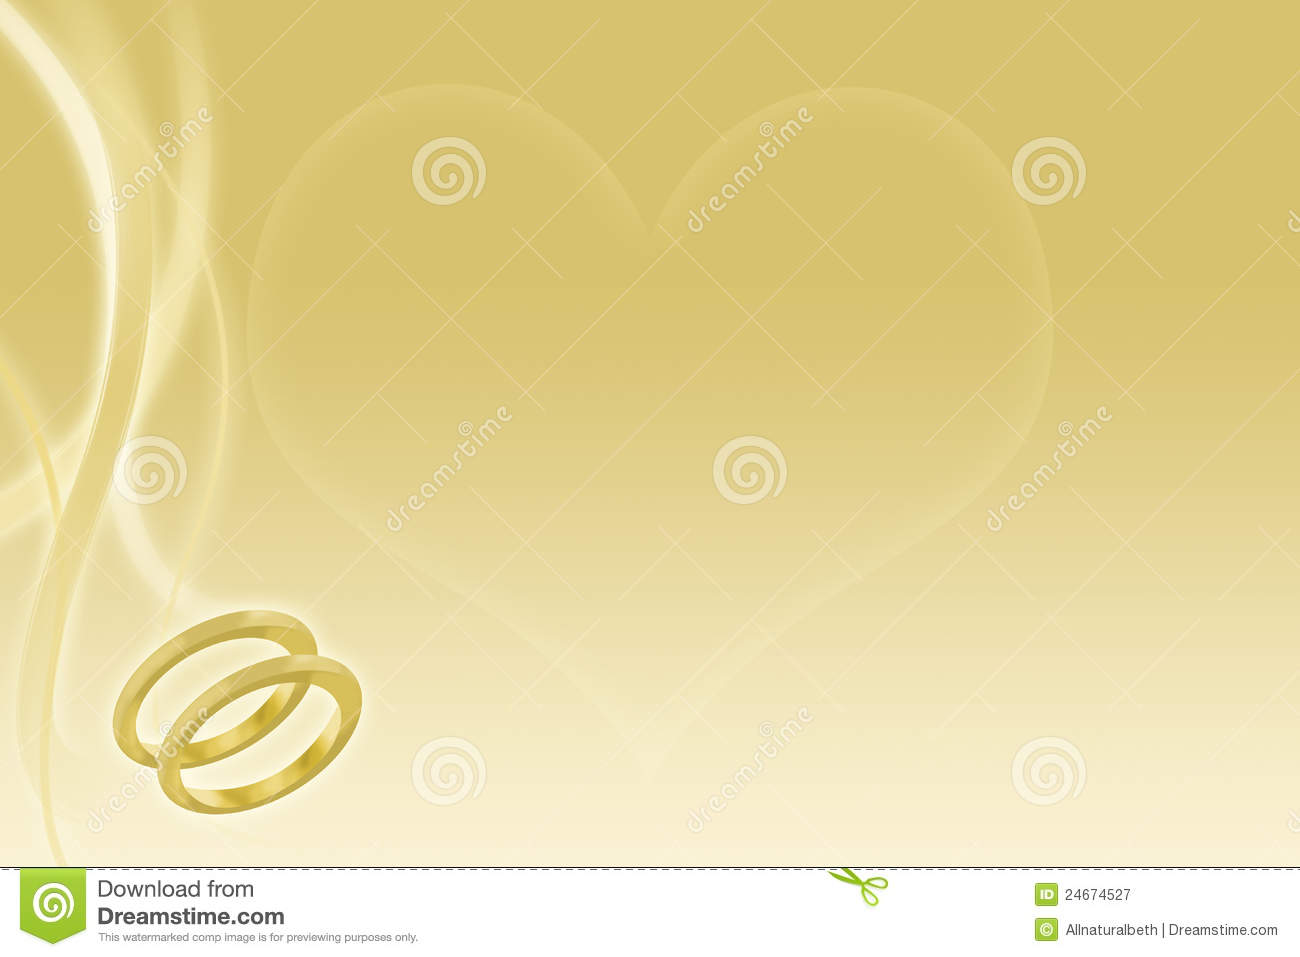 gold wedding background with rings and heart stock illustration image 24674527. Black Bedroom Furniture Sets. Home Design Ideas